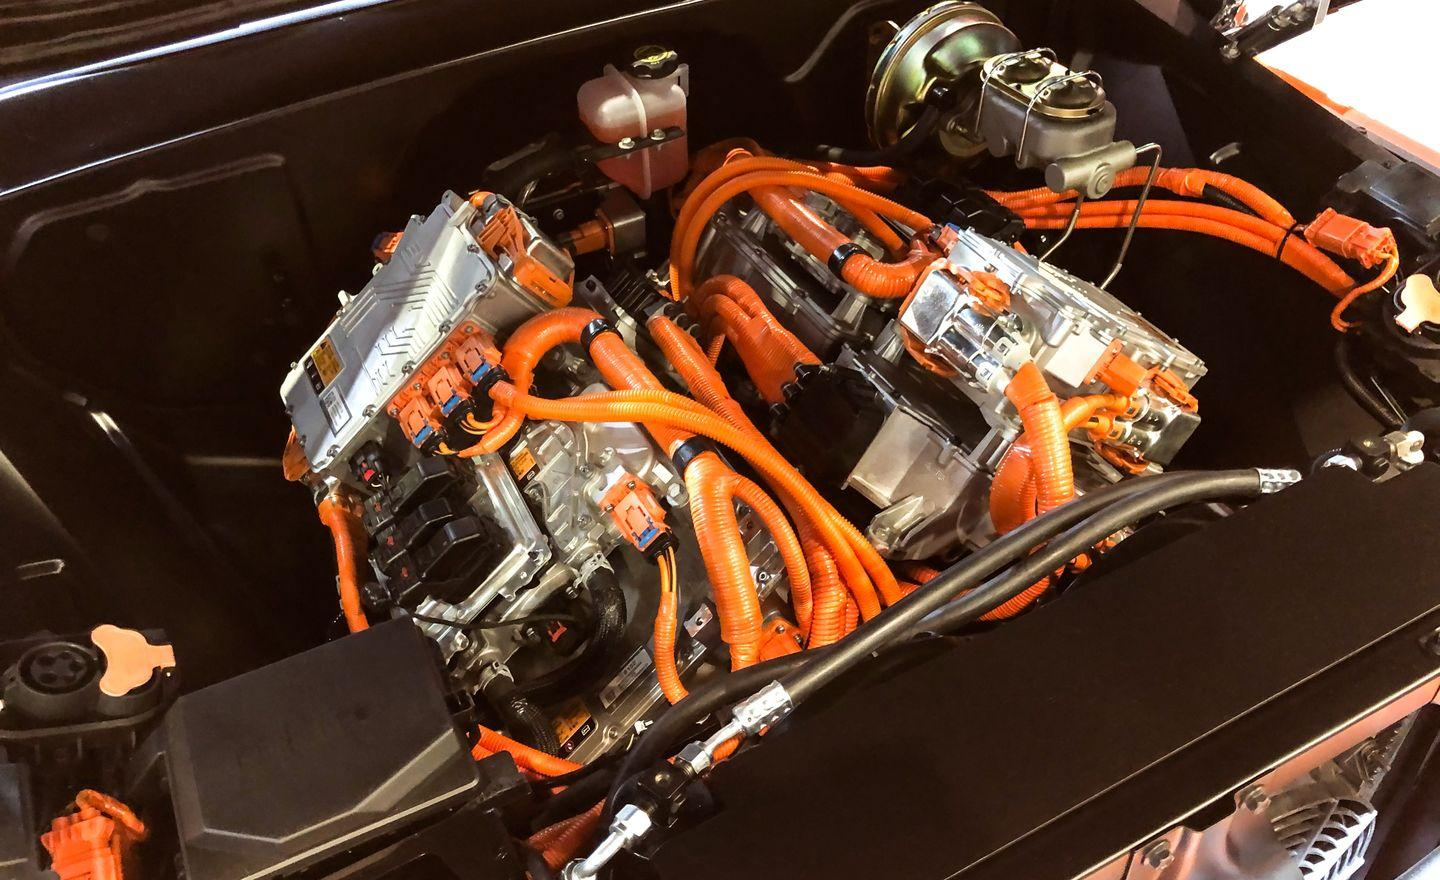 """<p>It's not an engine, it's a motor. Get it right. The <a href=""""https://www.caranddriver.com/news/a29714391/chevy-e-10-pickup-sema/"""" rel=""""nofollow noopener"""" target=""""_blank"""" data-ylk=""""slk:Chevrolet E-10 concept"""" class=""""link rapid-noclick-resp"""">Chevrolet E-10 concept</a> is a 450-hp electrified C-10 pickup. Typically the only time a 1970s Chevy pickup is plugged into anything, it's getting a two-amp charge in a barn someplace. In the E-10's case, however, the battery isn't on the workbench; it's inside the bed. The two electric motors seen here are called eCrate motors, a nod to the popular Chevy crate engines that <a href=""""https://www.caranddriver.com/reviews/a15097317/flyin-miata-habu-mx-5-v-8-test-review/"""" rel=""""nofollow noopener"""" target=""""_blank"""" data-ylk=""""slk:can be found swapped into just about anything"""" class=""""link rapid-noclick-resp"""">can be found swapped into just about anything</a>. GM claims the E-10 can complete a zero-to-60-mph takeoff in roughly five seconds with a quarter-mile time in the high 13s. A Tesla P100D can do it in 10.72 seconds, but it doesn't look as cool. We'd like to imagine this setup offered in a 2021 Chevrolet Bolt SS, but we know better. </p>"""